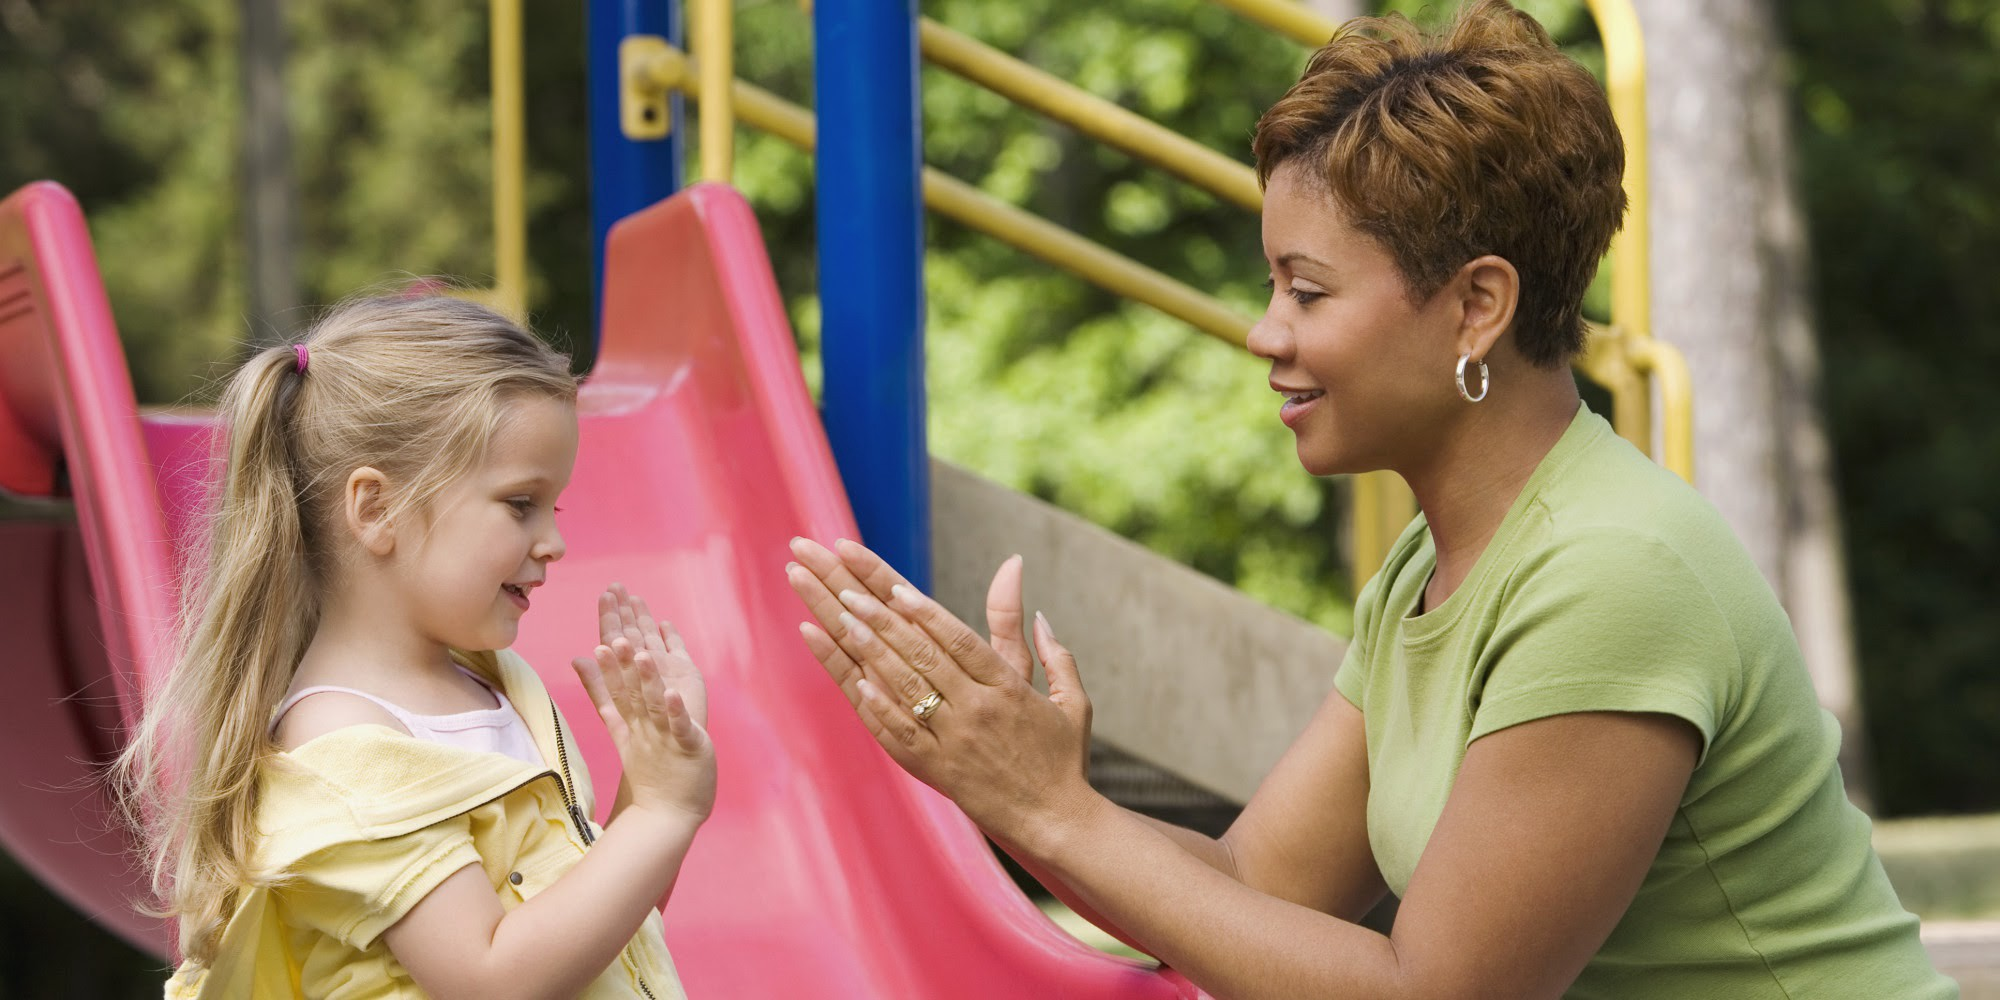 White child with long blond hair/pigtails playing paddycake with black women with short hair and green shirt on playground